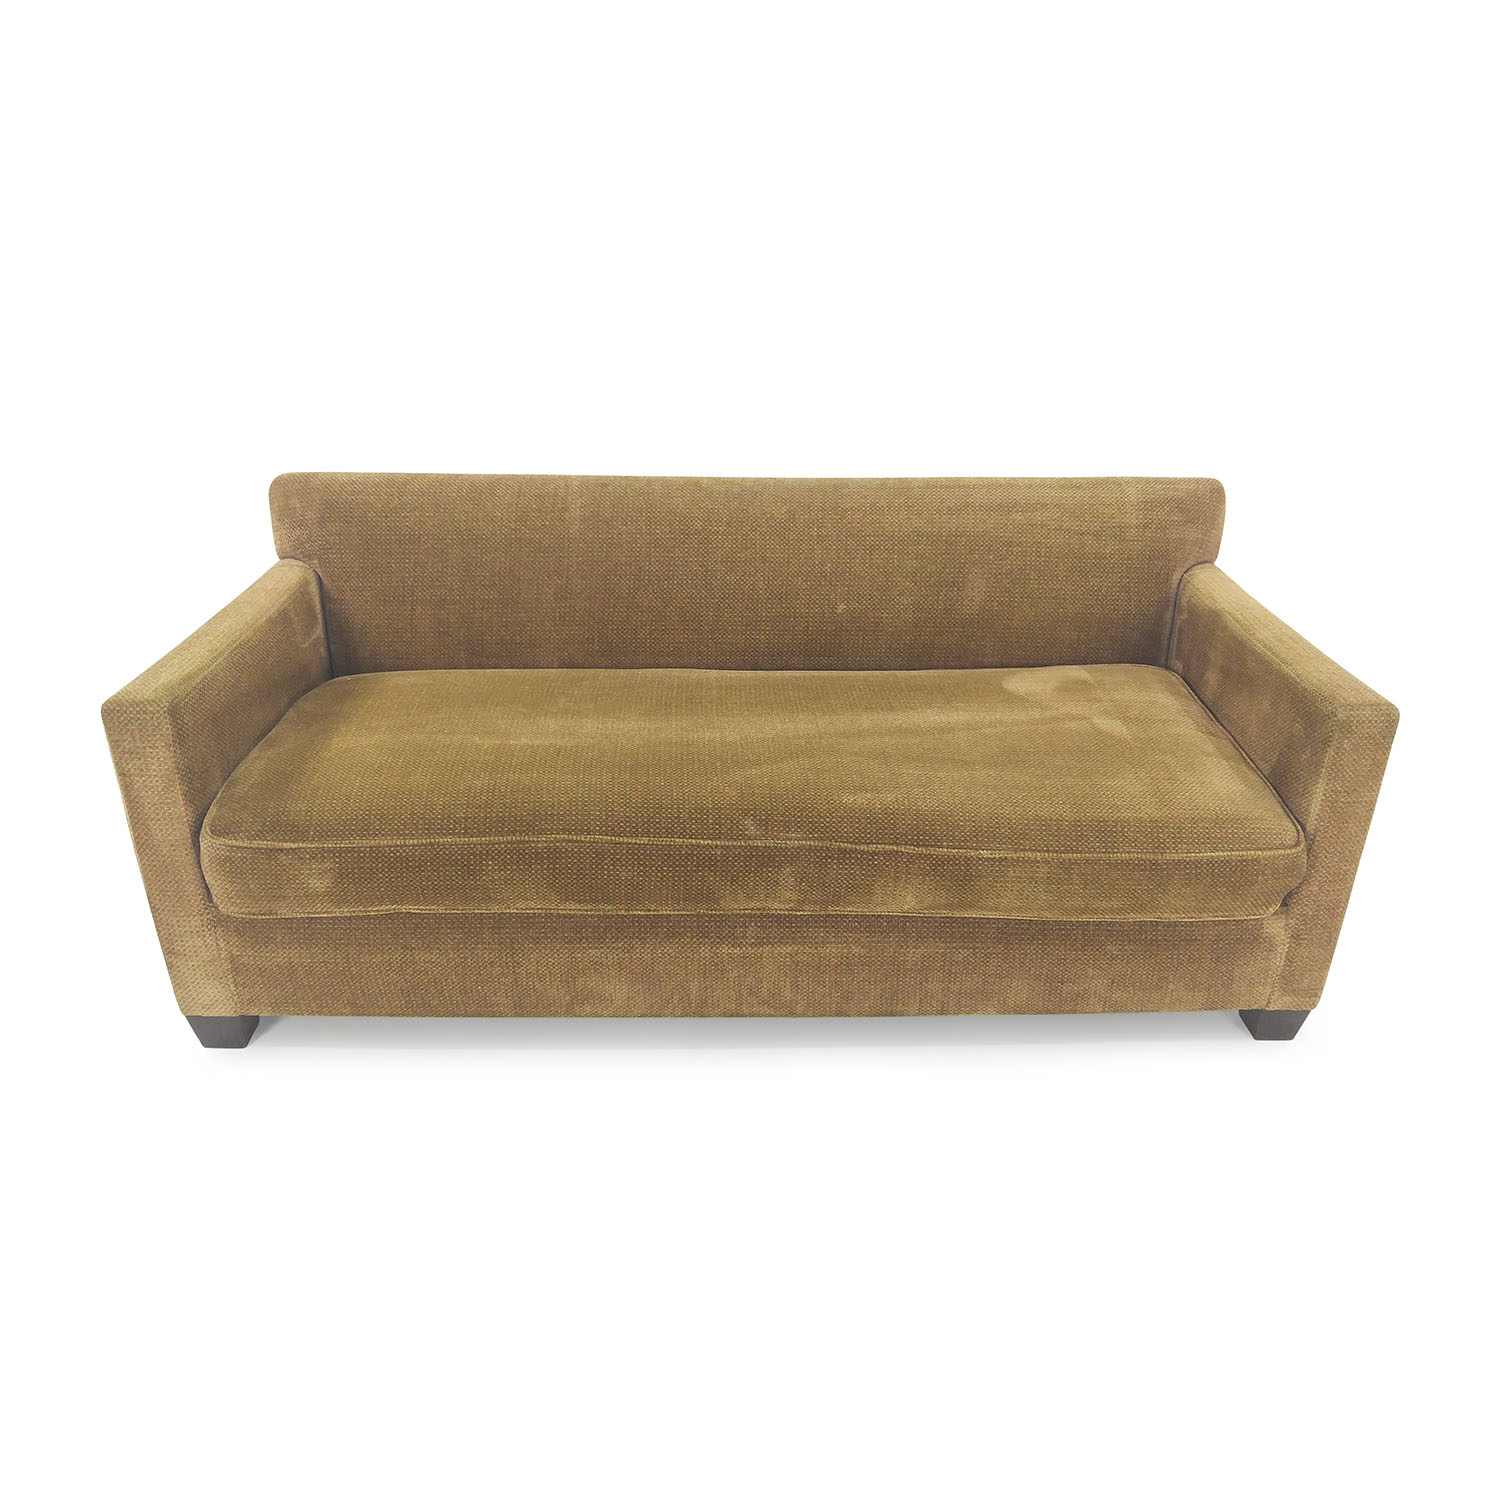 64% OFF Two Cushion Brown Slightly Tufted Couch Sofas